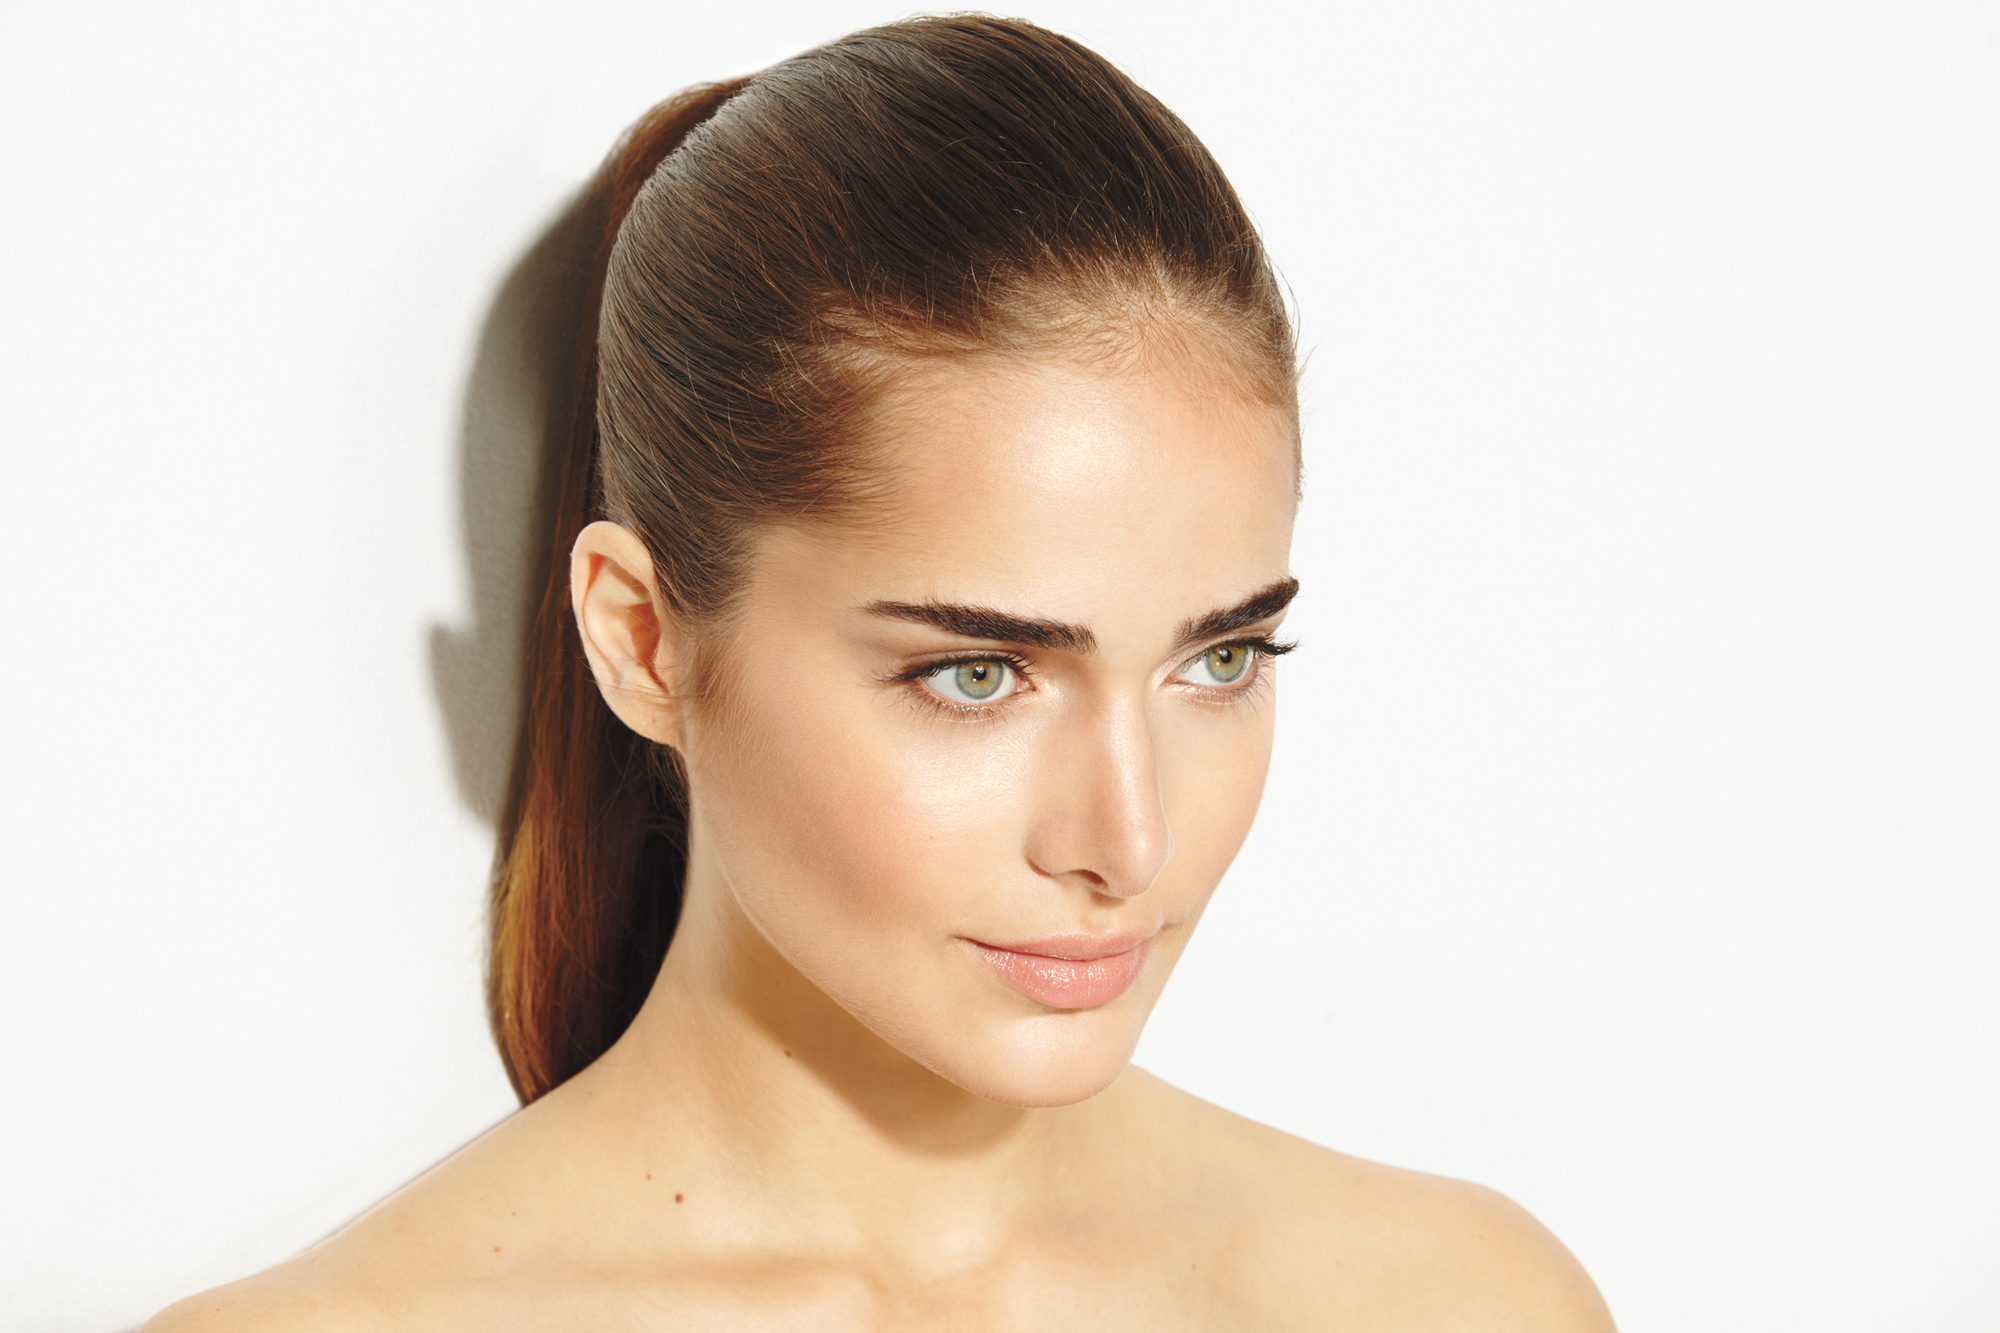 Model with glowing skin and hair pulled back in ponytail